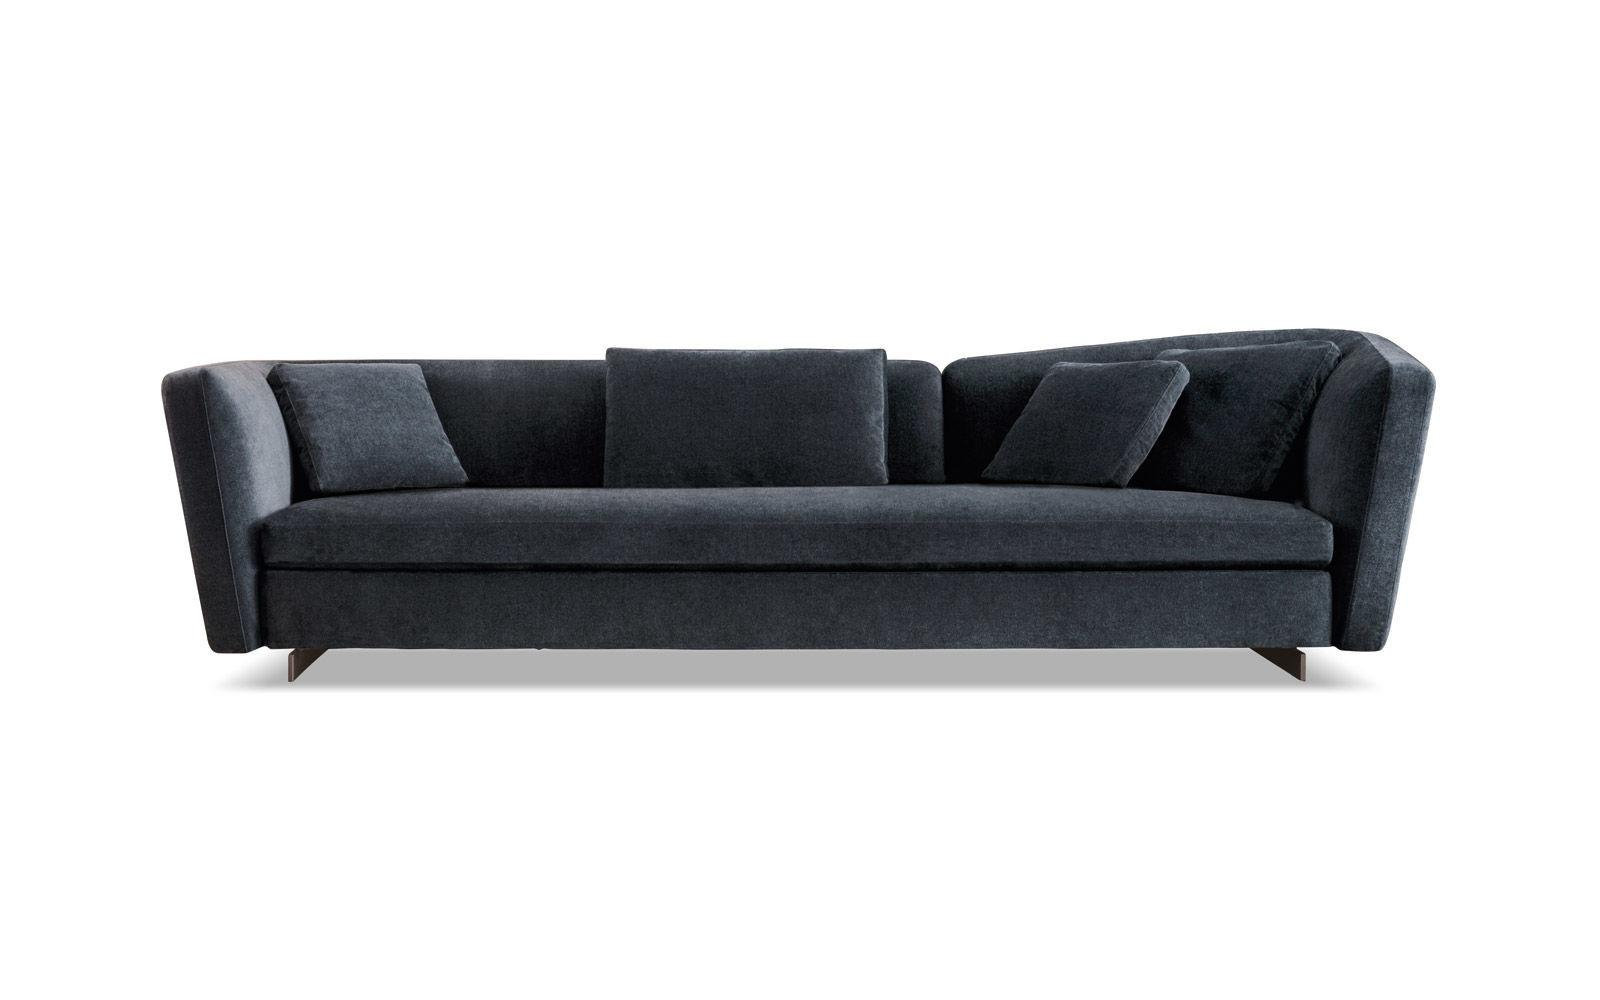 Full Size of Minotti Couch For Sale Sofa Alexander India Freeman Duvet Cost Dimensions Andersen Seating System Lawrence Cad Block Sofas Allen Thesofa 23558 Sofa Minotti Sofa